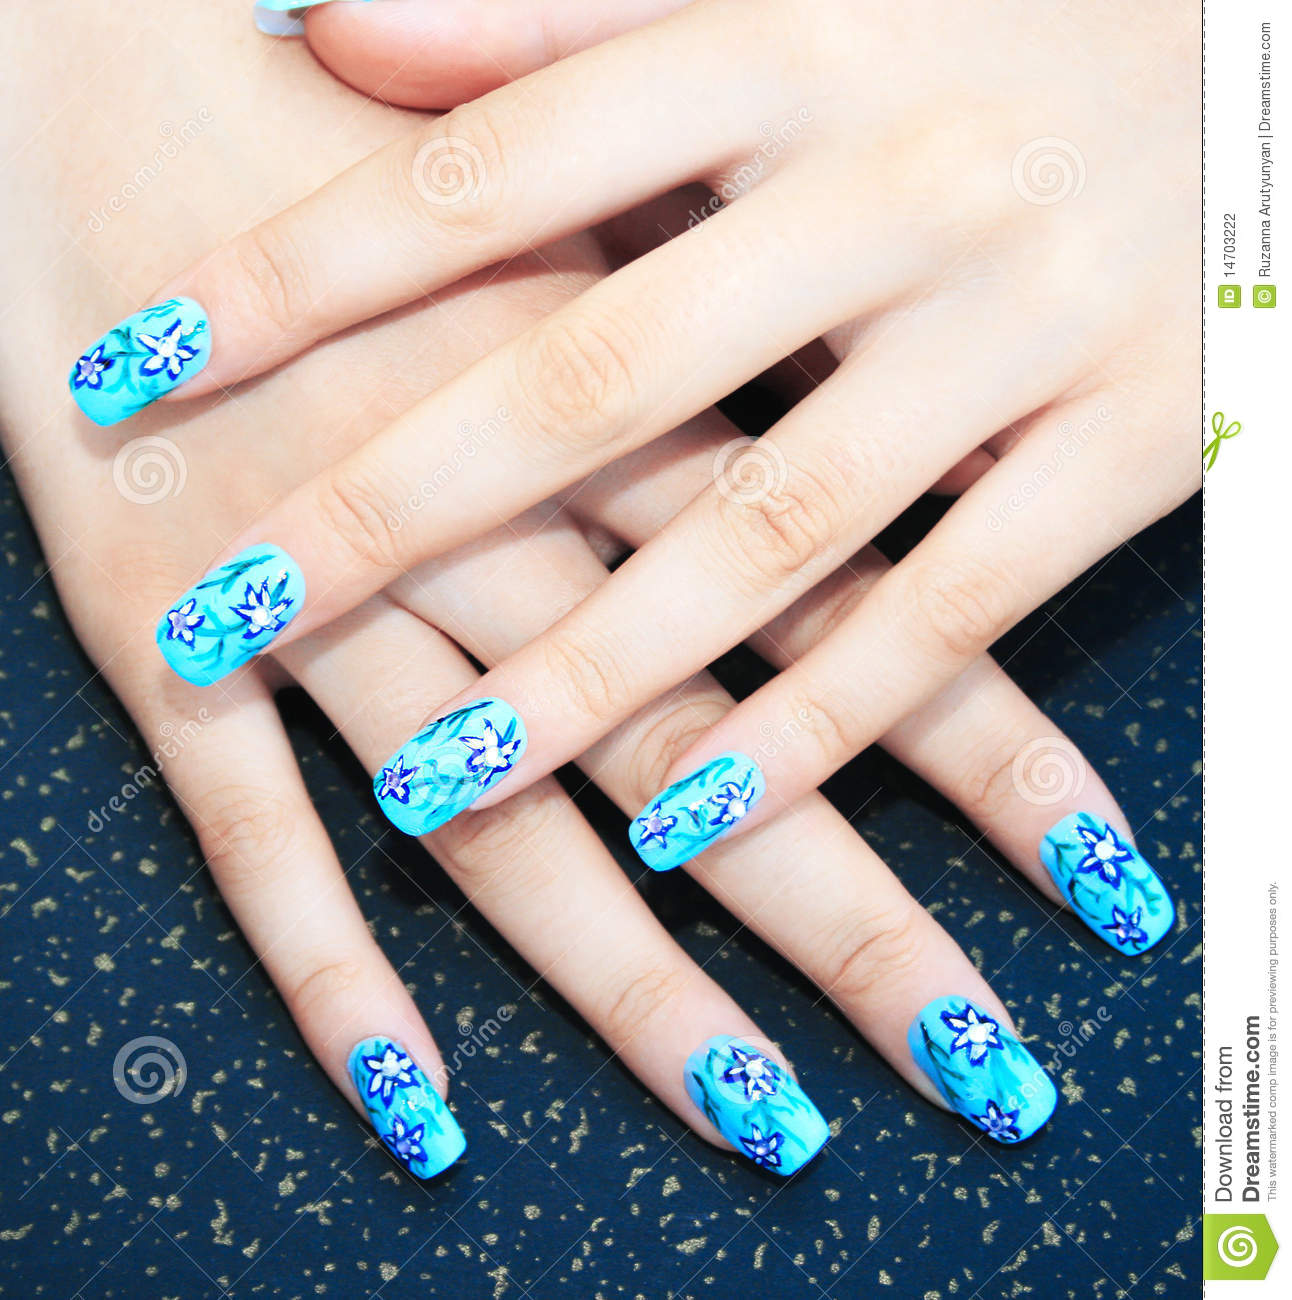 Hands With Nail Art Stock Photo Image Of Artistically 14703222